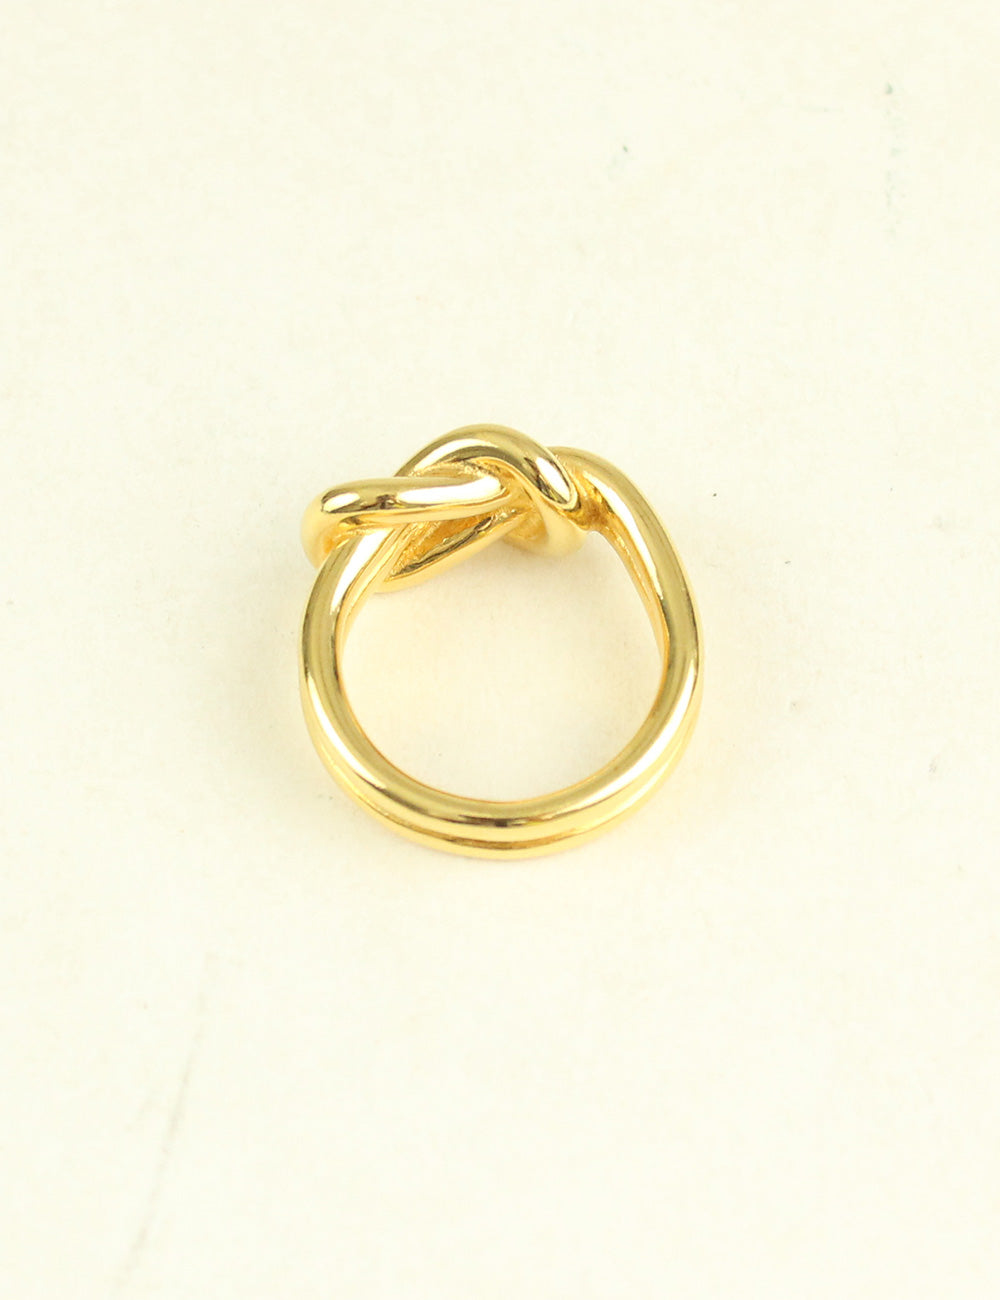 Hermes <br> Knot Scarf Ring